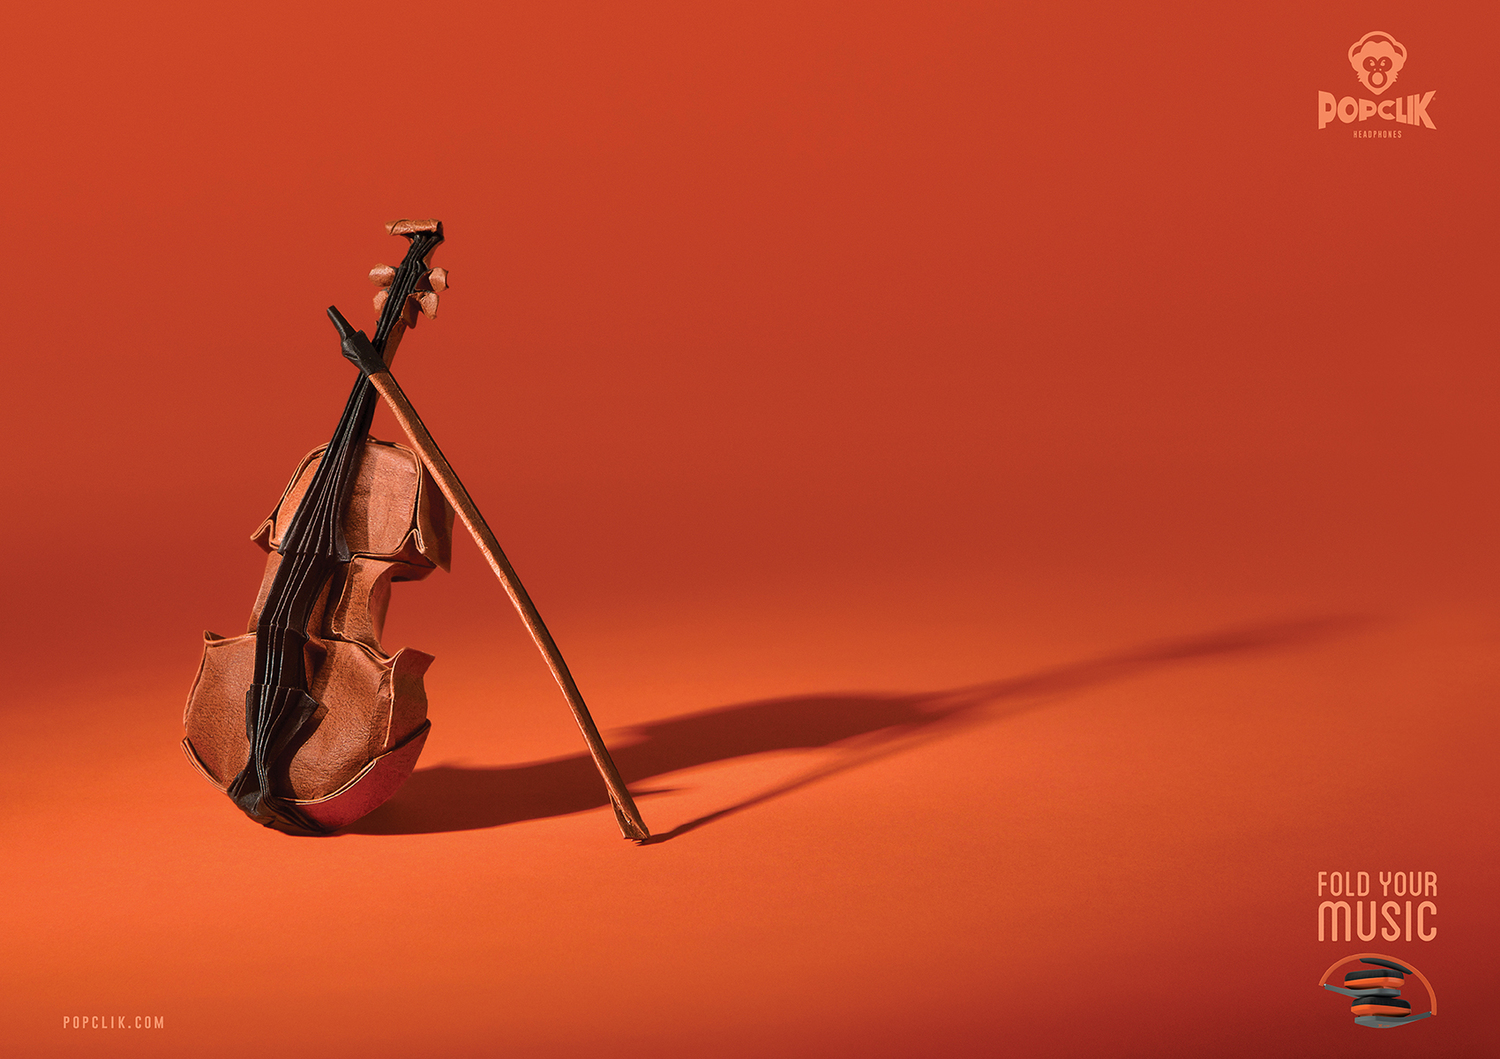 pop_clik_fold_your_music_cello_A2(rgb)LR.jpg